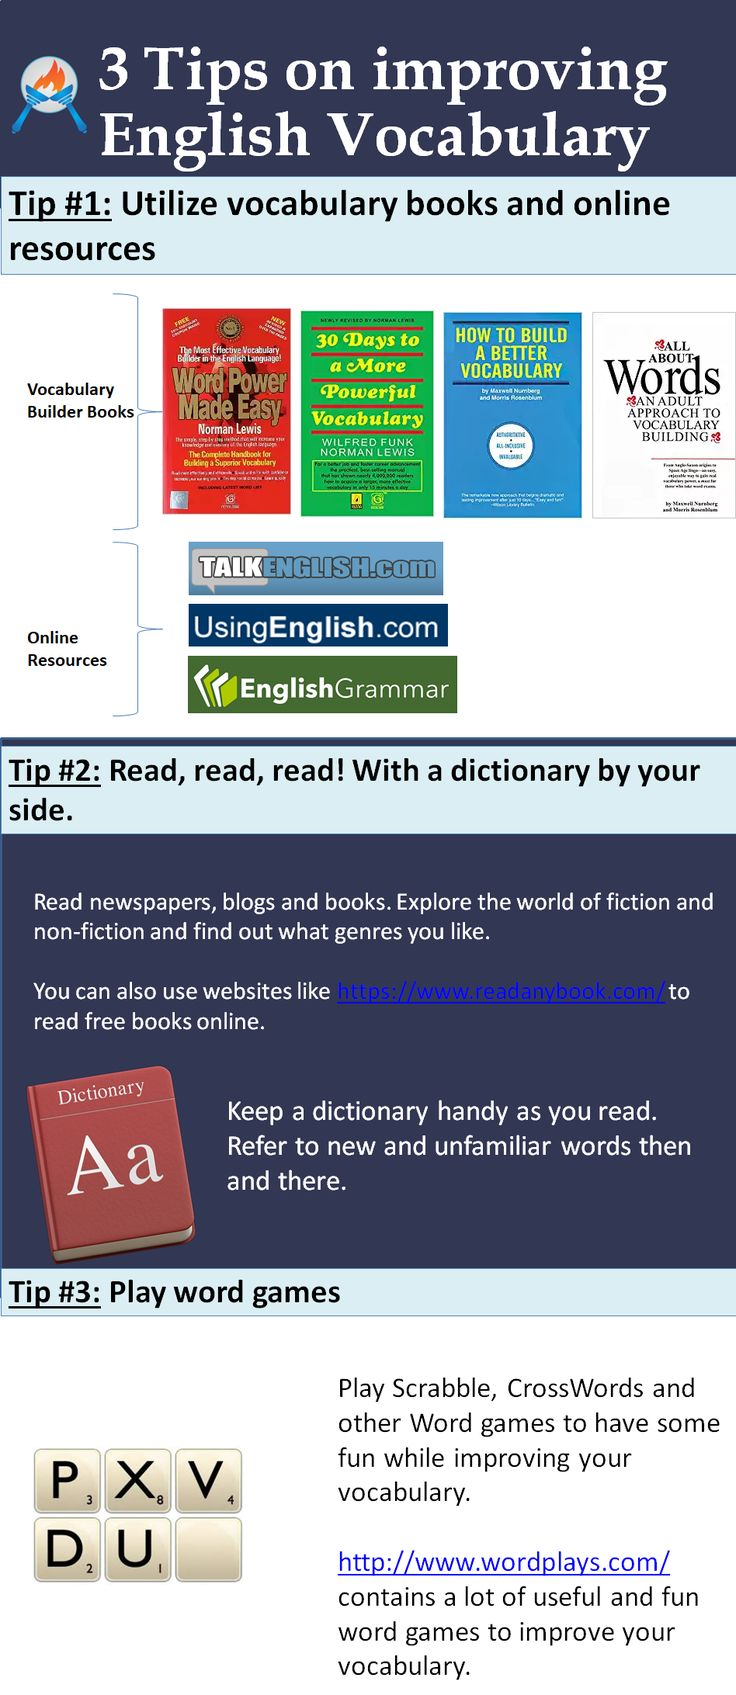 41 best Learning Pundits - Lessons. Quiz & Aptitude Tests For Interviews Hiring Tests images on Pinterest   Reasoning test. English grammar test ...